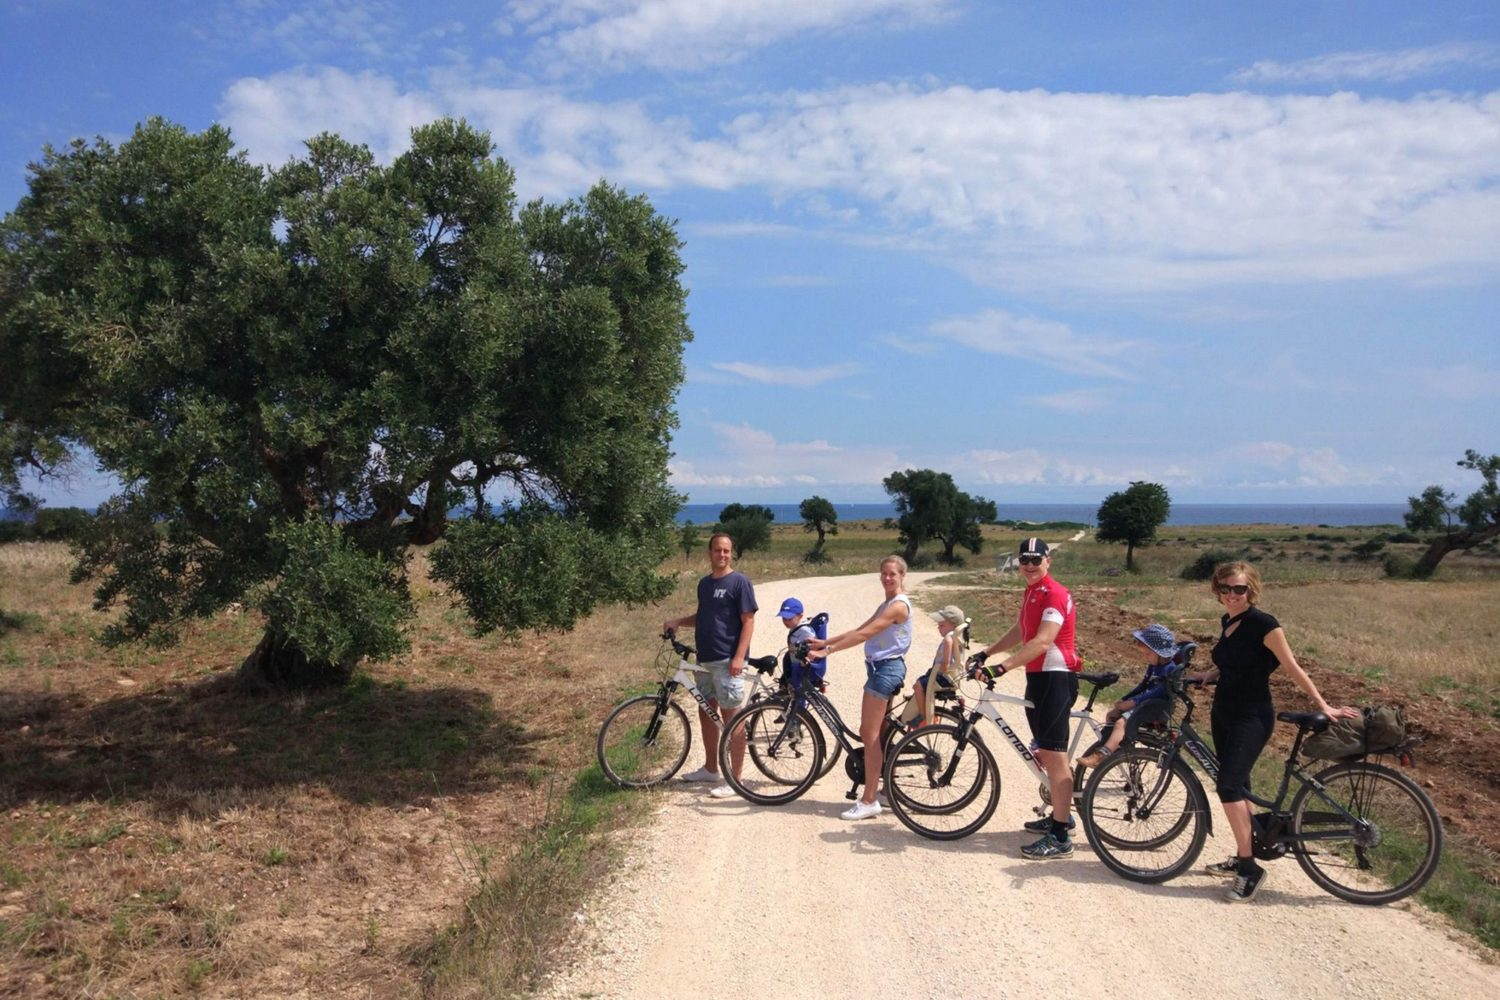 Olive oil bike tour in Puglia Italy